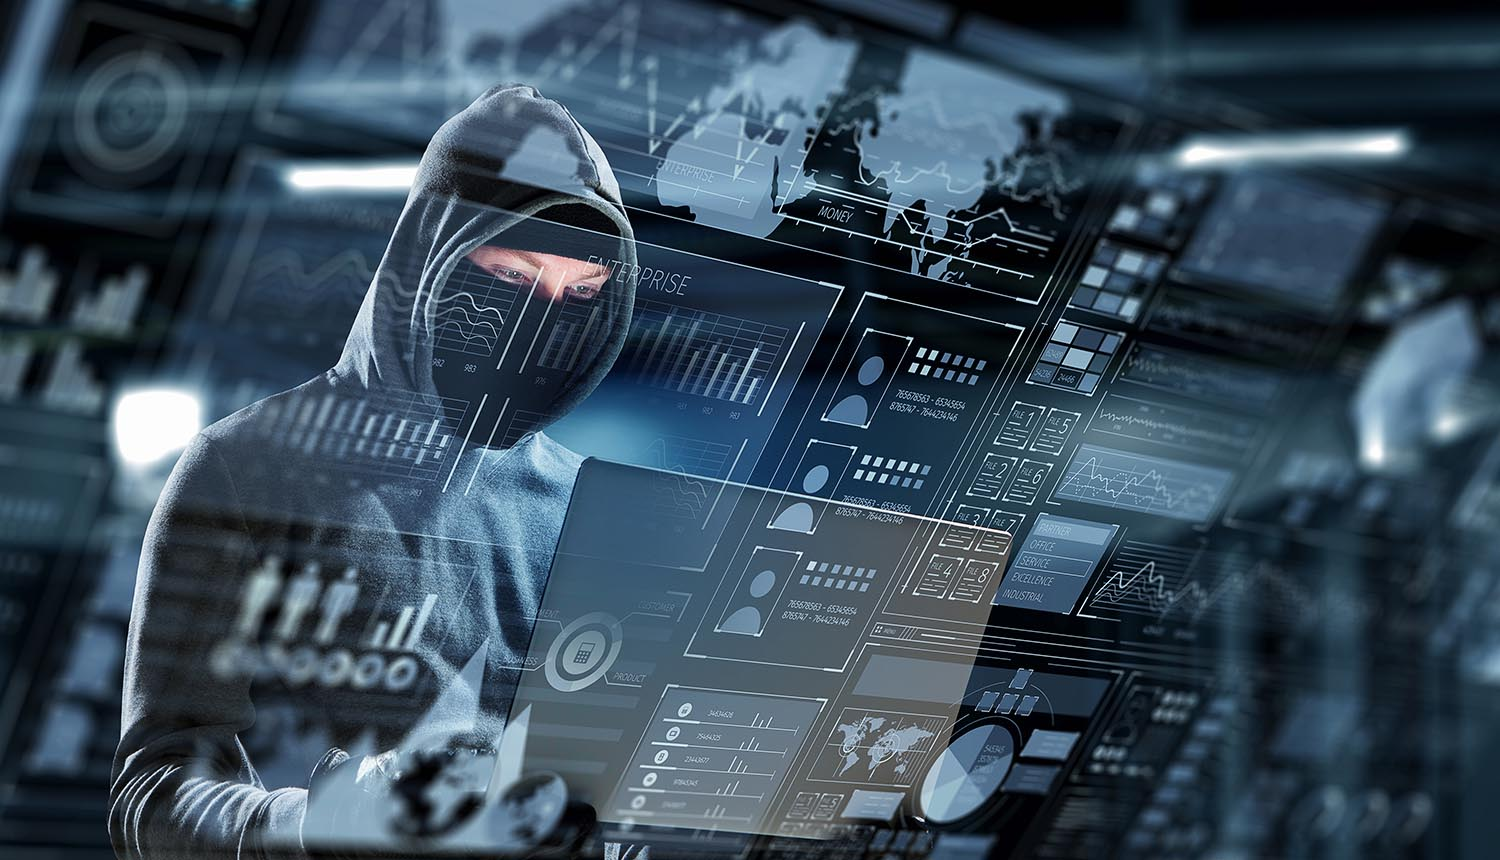 Four simple tips to avoid being the low hanging fruit for cyber criminals